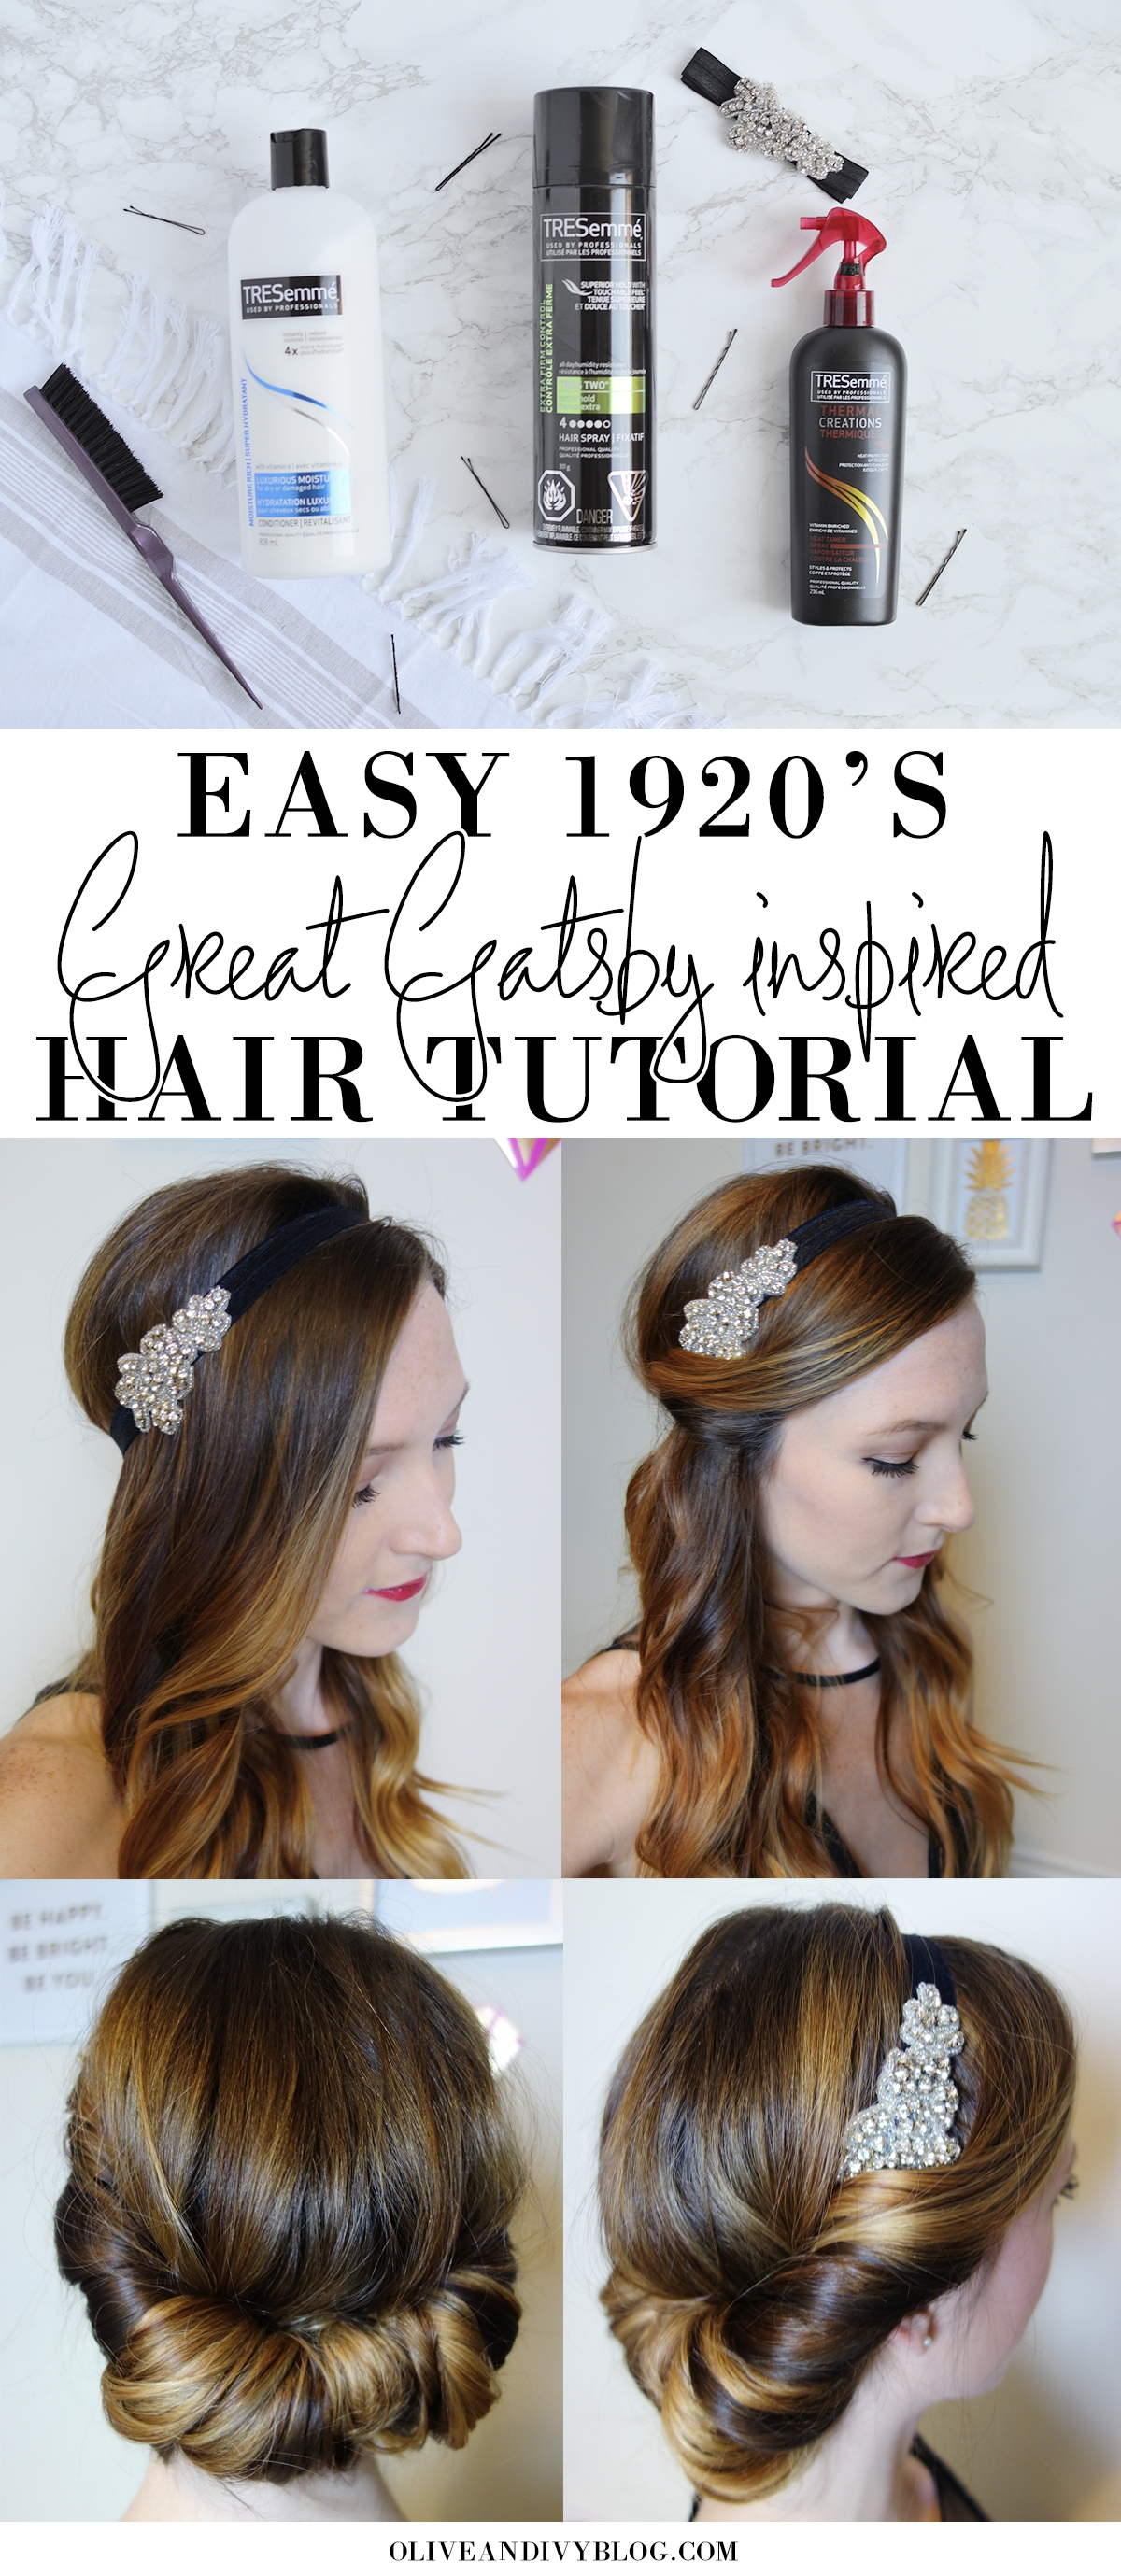 Easy 1920's/great Gatsby Hair Tutorial | 1920S | 1920S Hair, Great pertaining to Gatsby Hair With Fringe